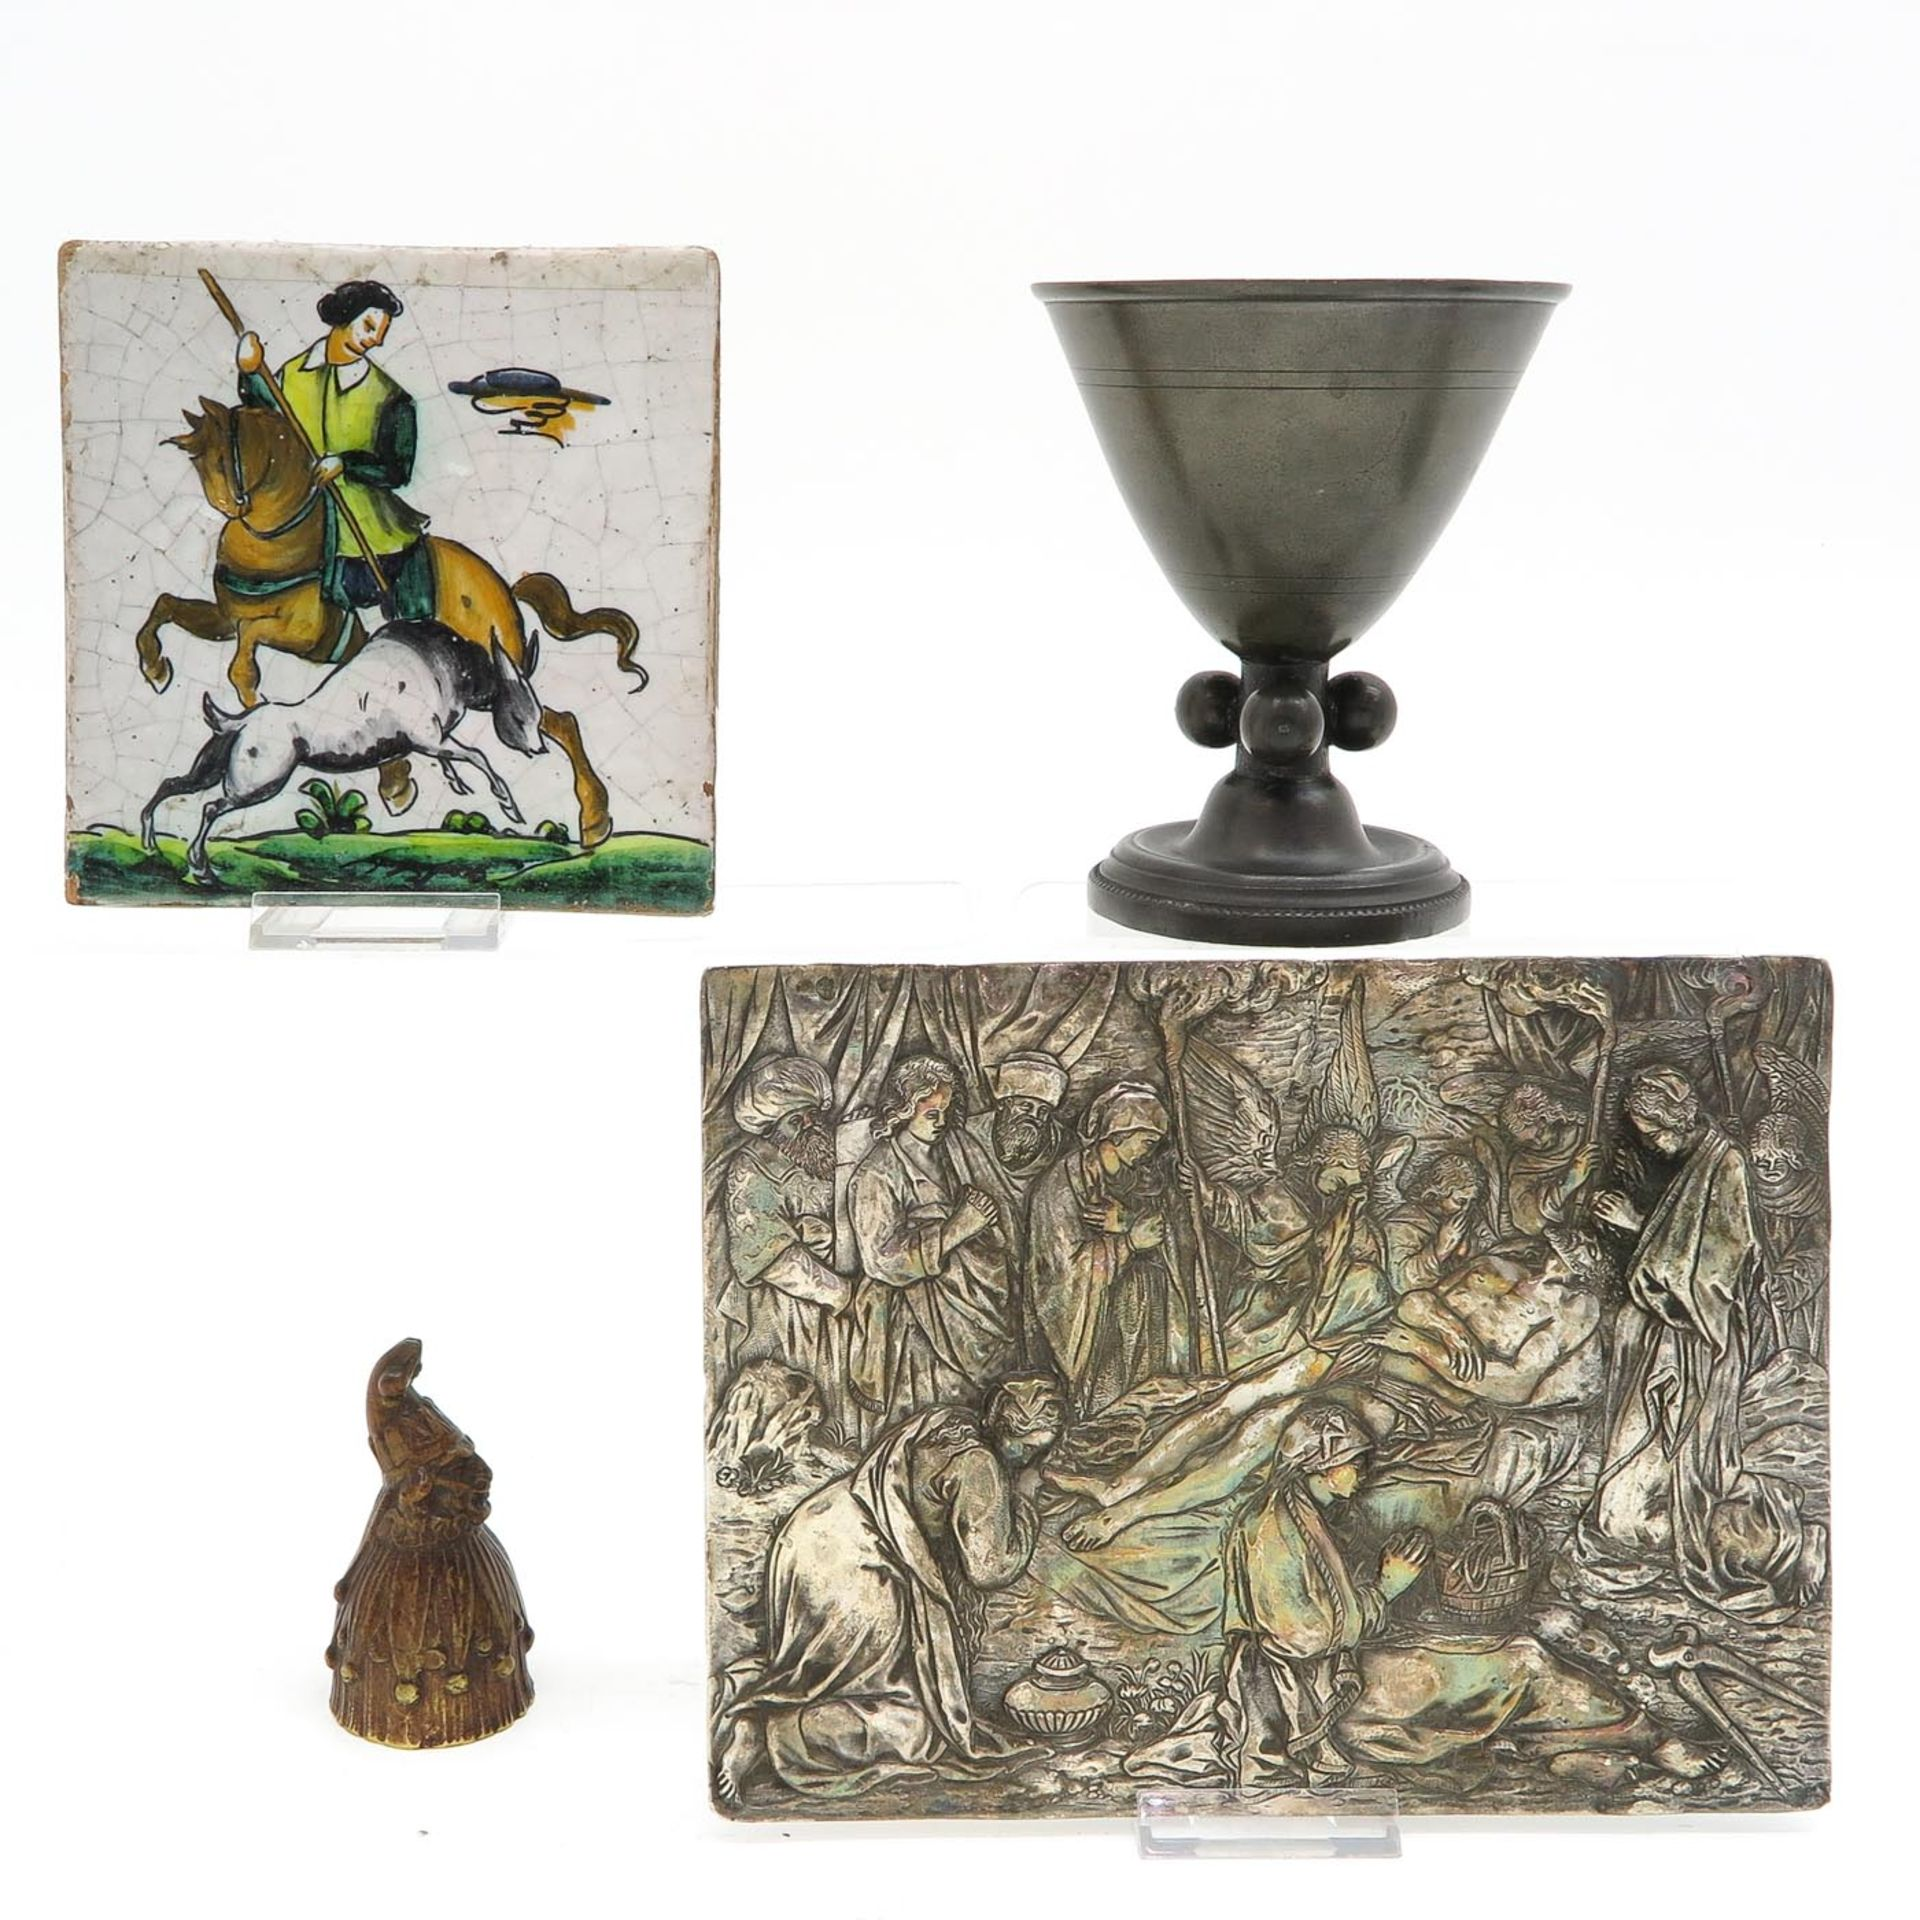 Los 1059 - A Diverse Collection of Collectible Religious Items